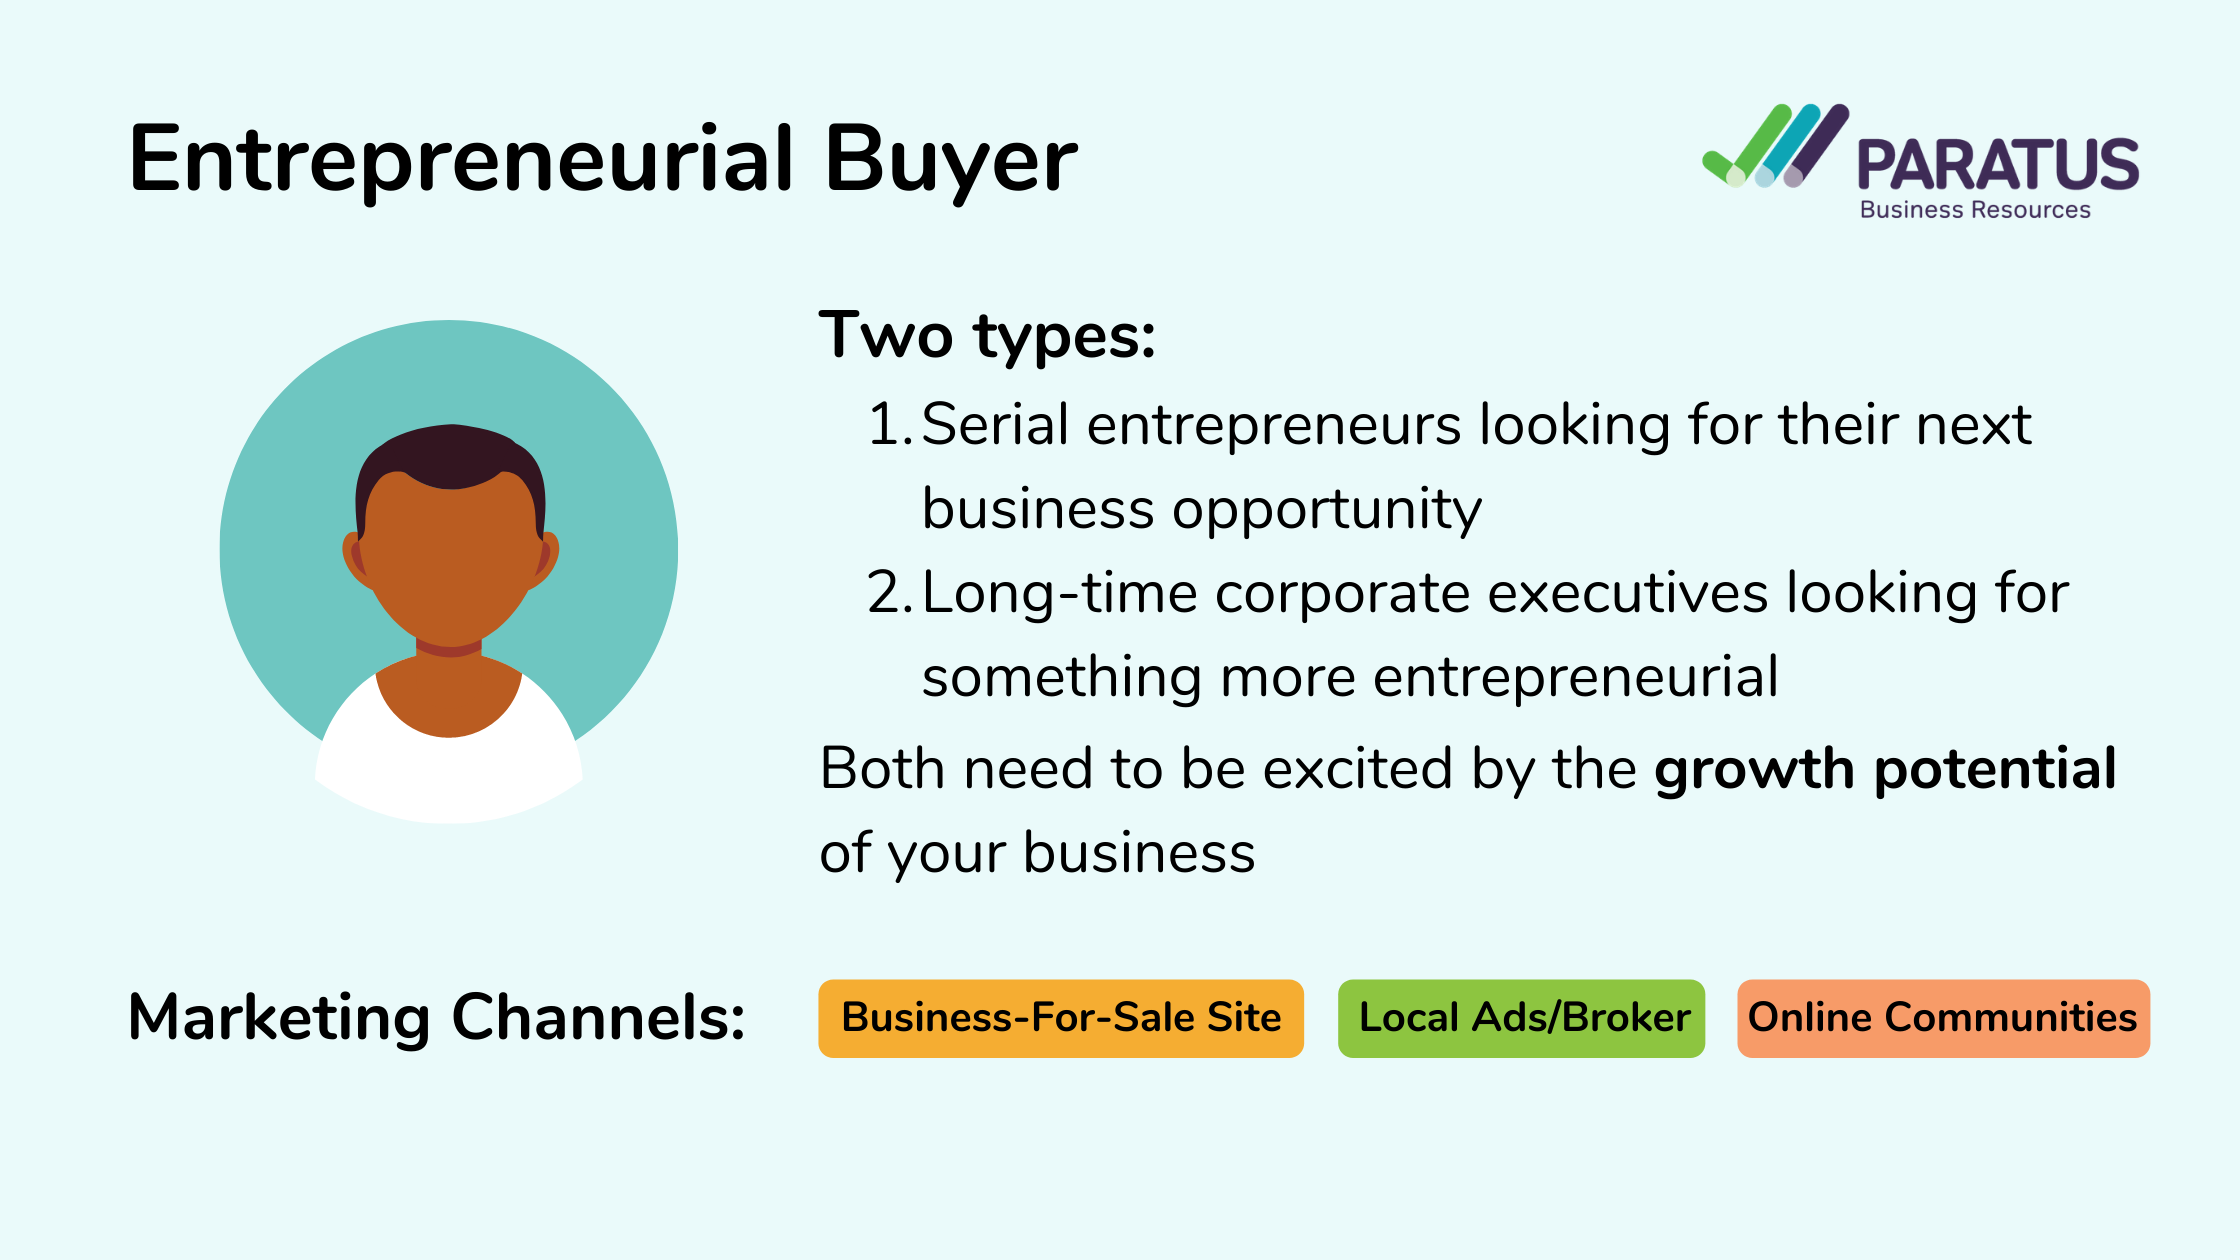 Image describing that Entrepreneurial Buyers need to be excited by the growth potential of your business